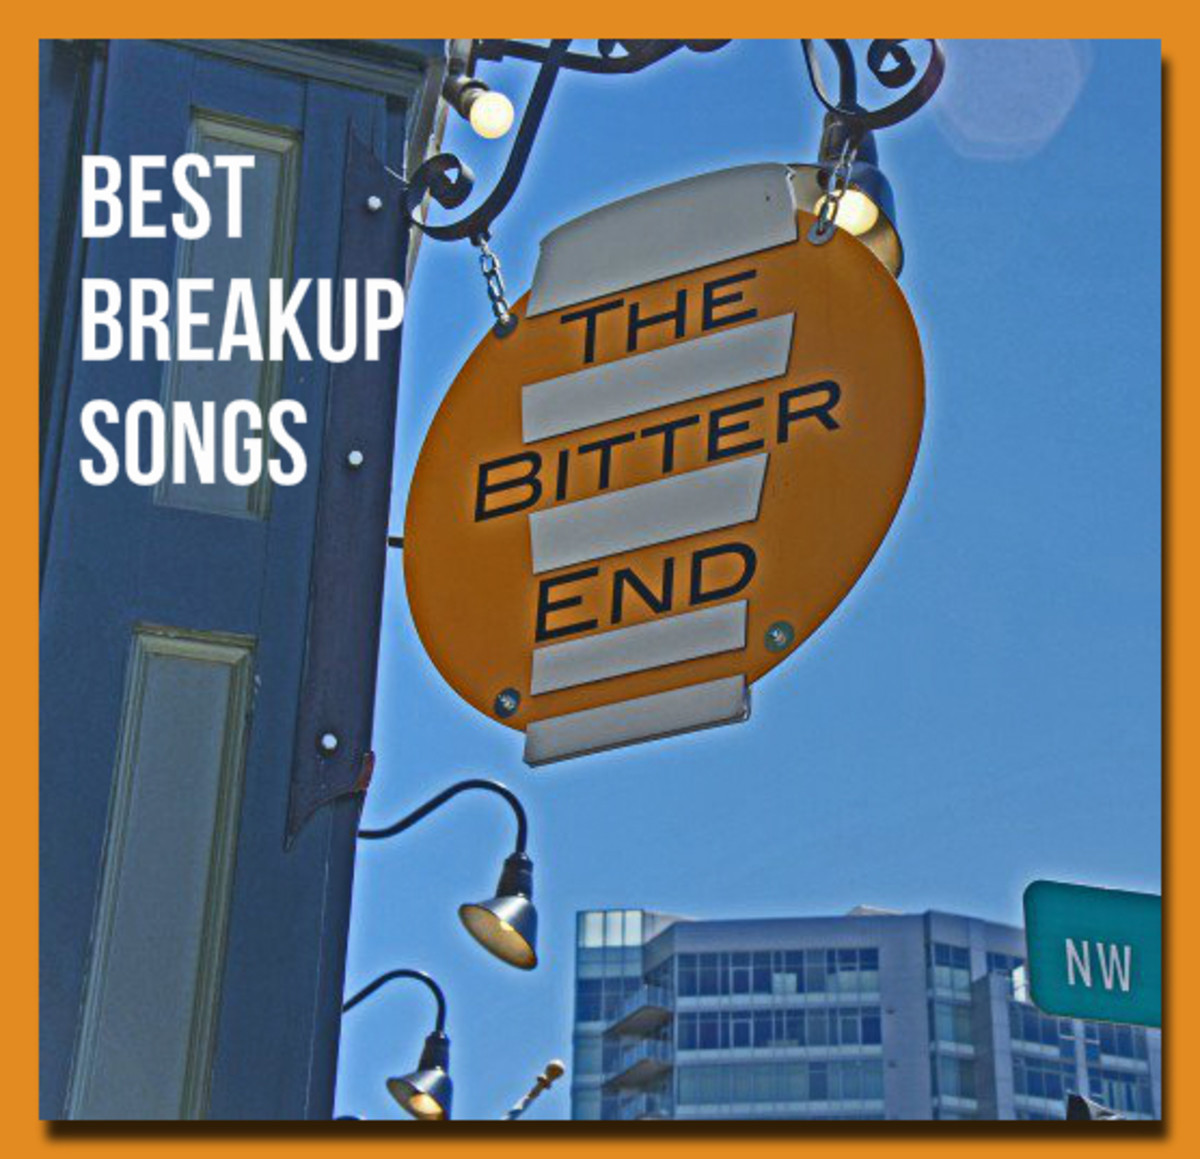 118 Songs About Breakups, Heartbreak, and Divorce